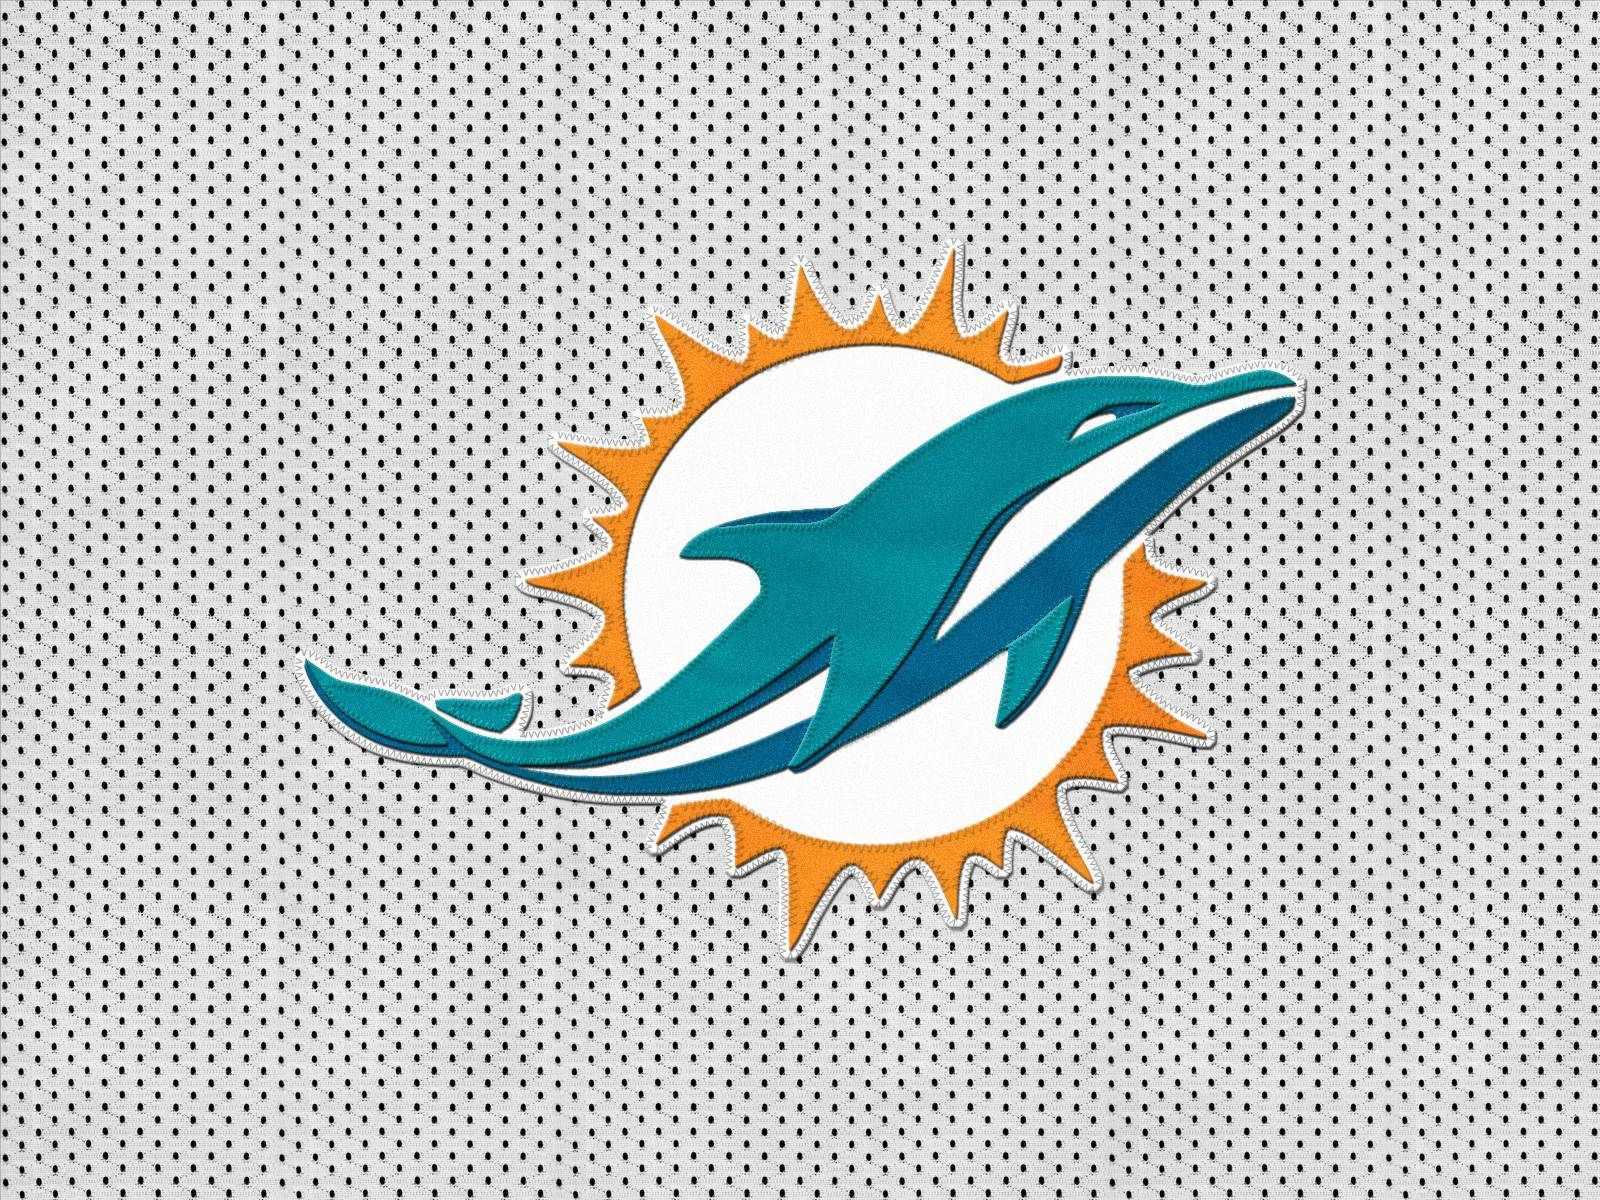 Thread Miami Dolphins New Logo Uniforms